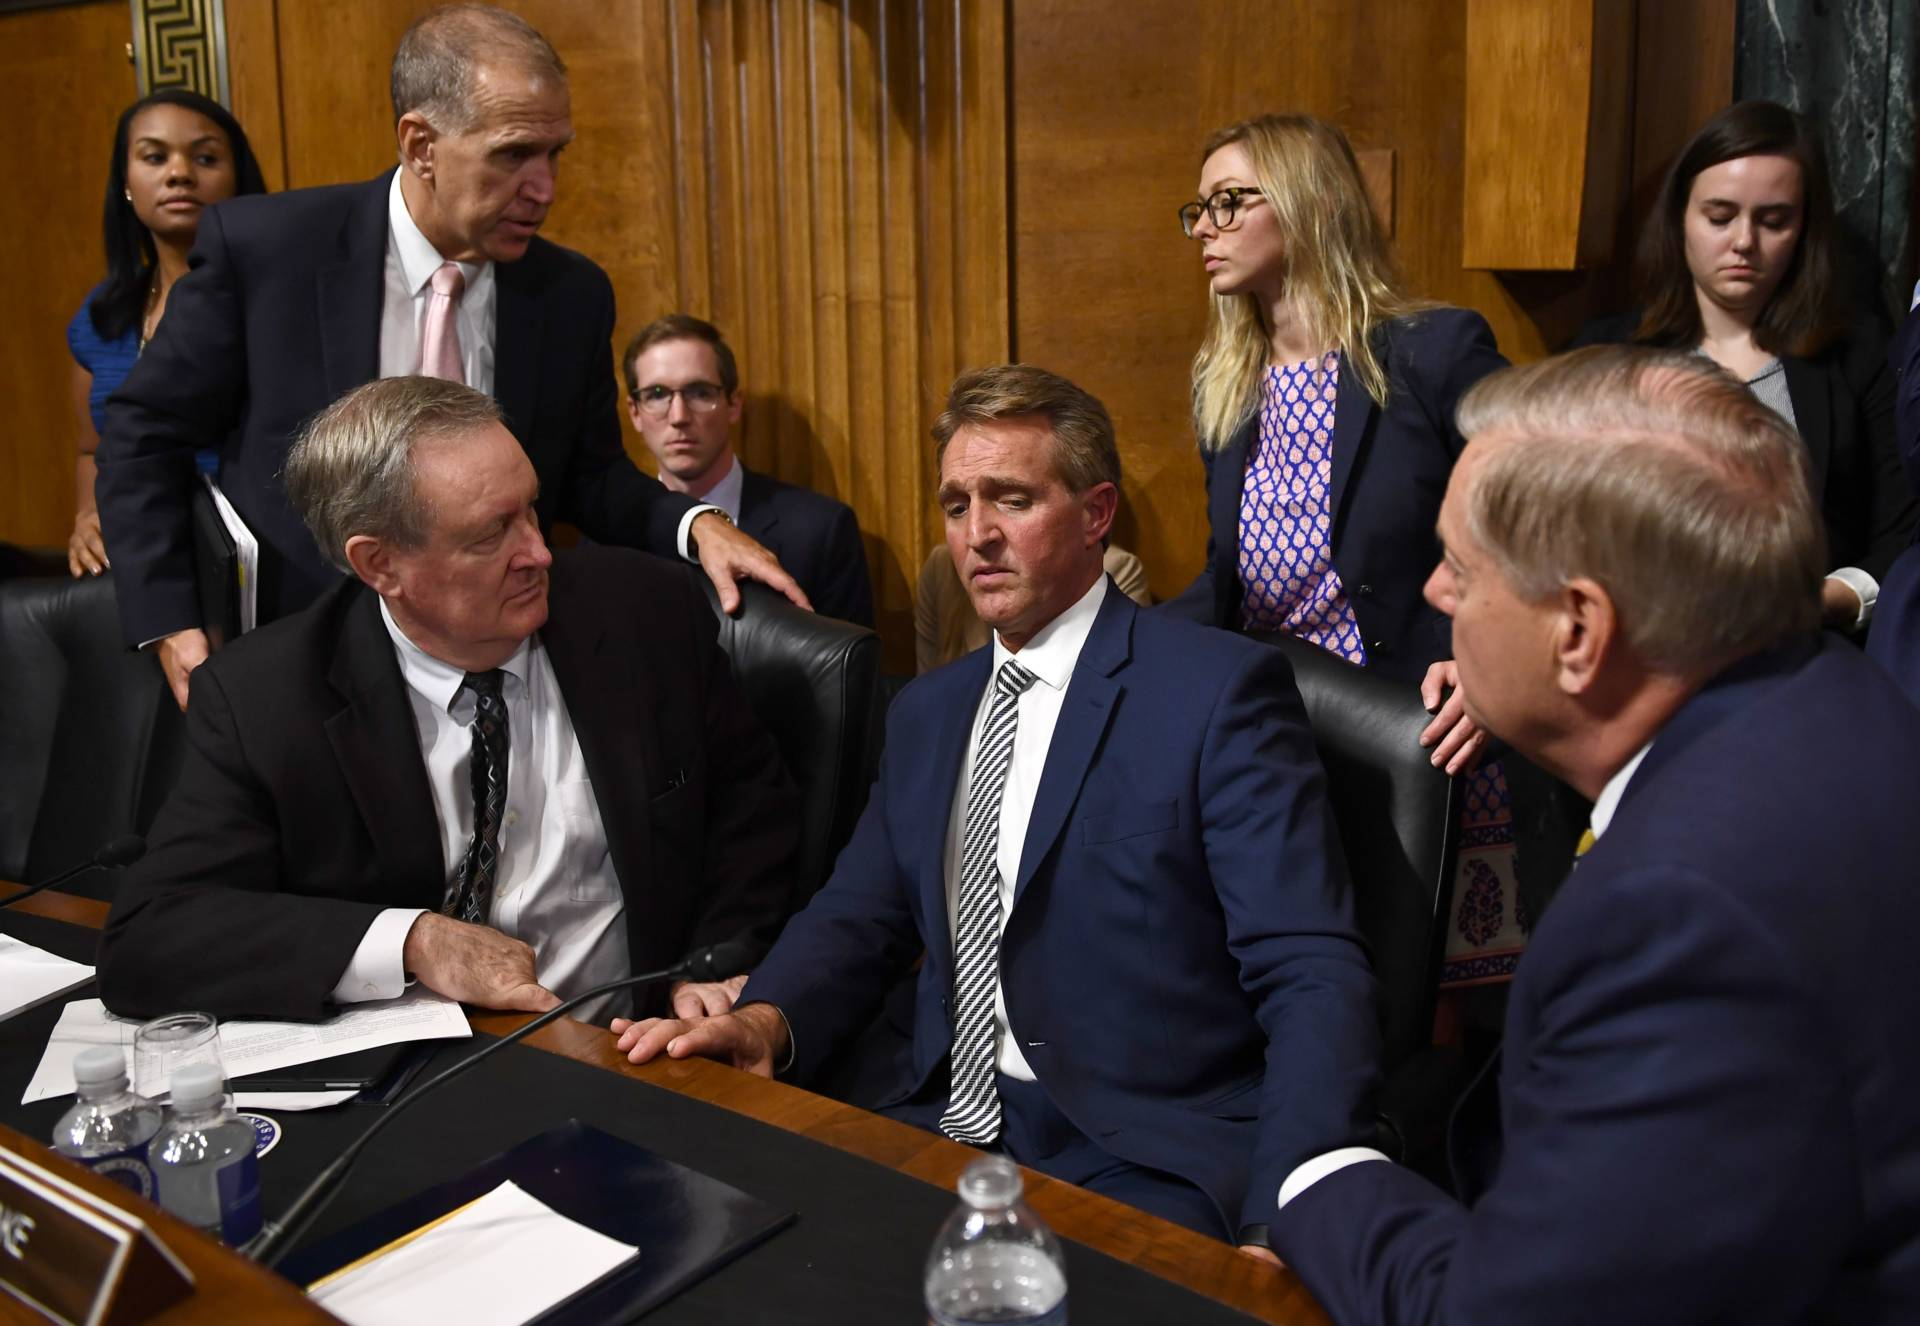 Senate Judiciary Committee member Sen. Jeff Flake (R-AZ) speaks with committee colleagues during a hearing on Capitol Hill in Washington, DC on Sept. 28, 2018 on the nomination of Brett M. Kavanaugh to be an associate justice of the Supreme Court of the United States. Brendan Smialowski/AFP/Getty Images